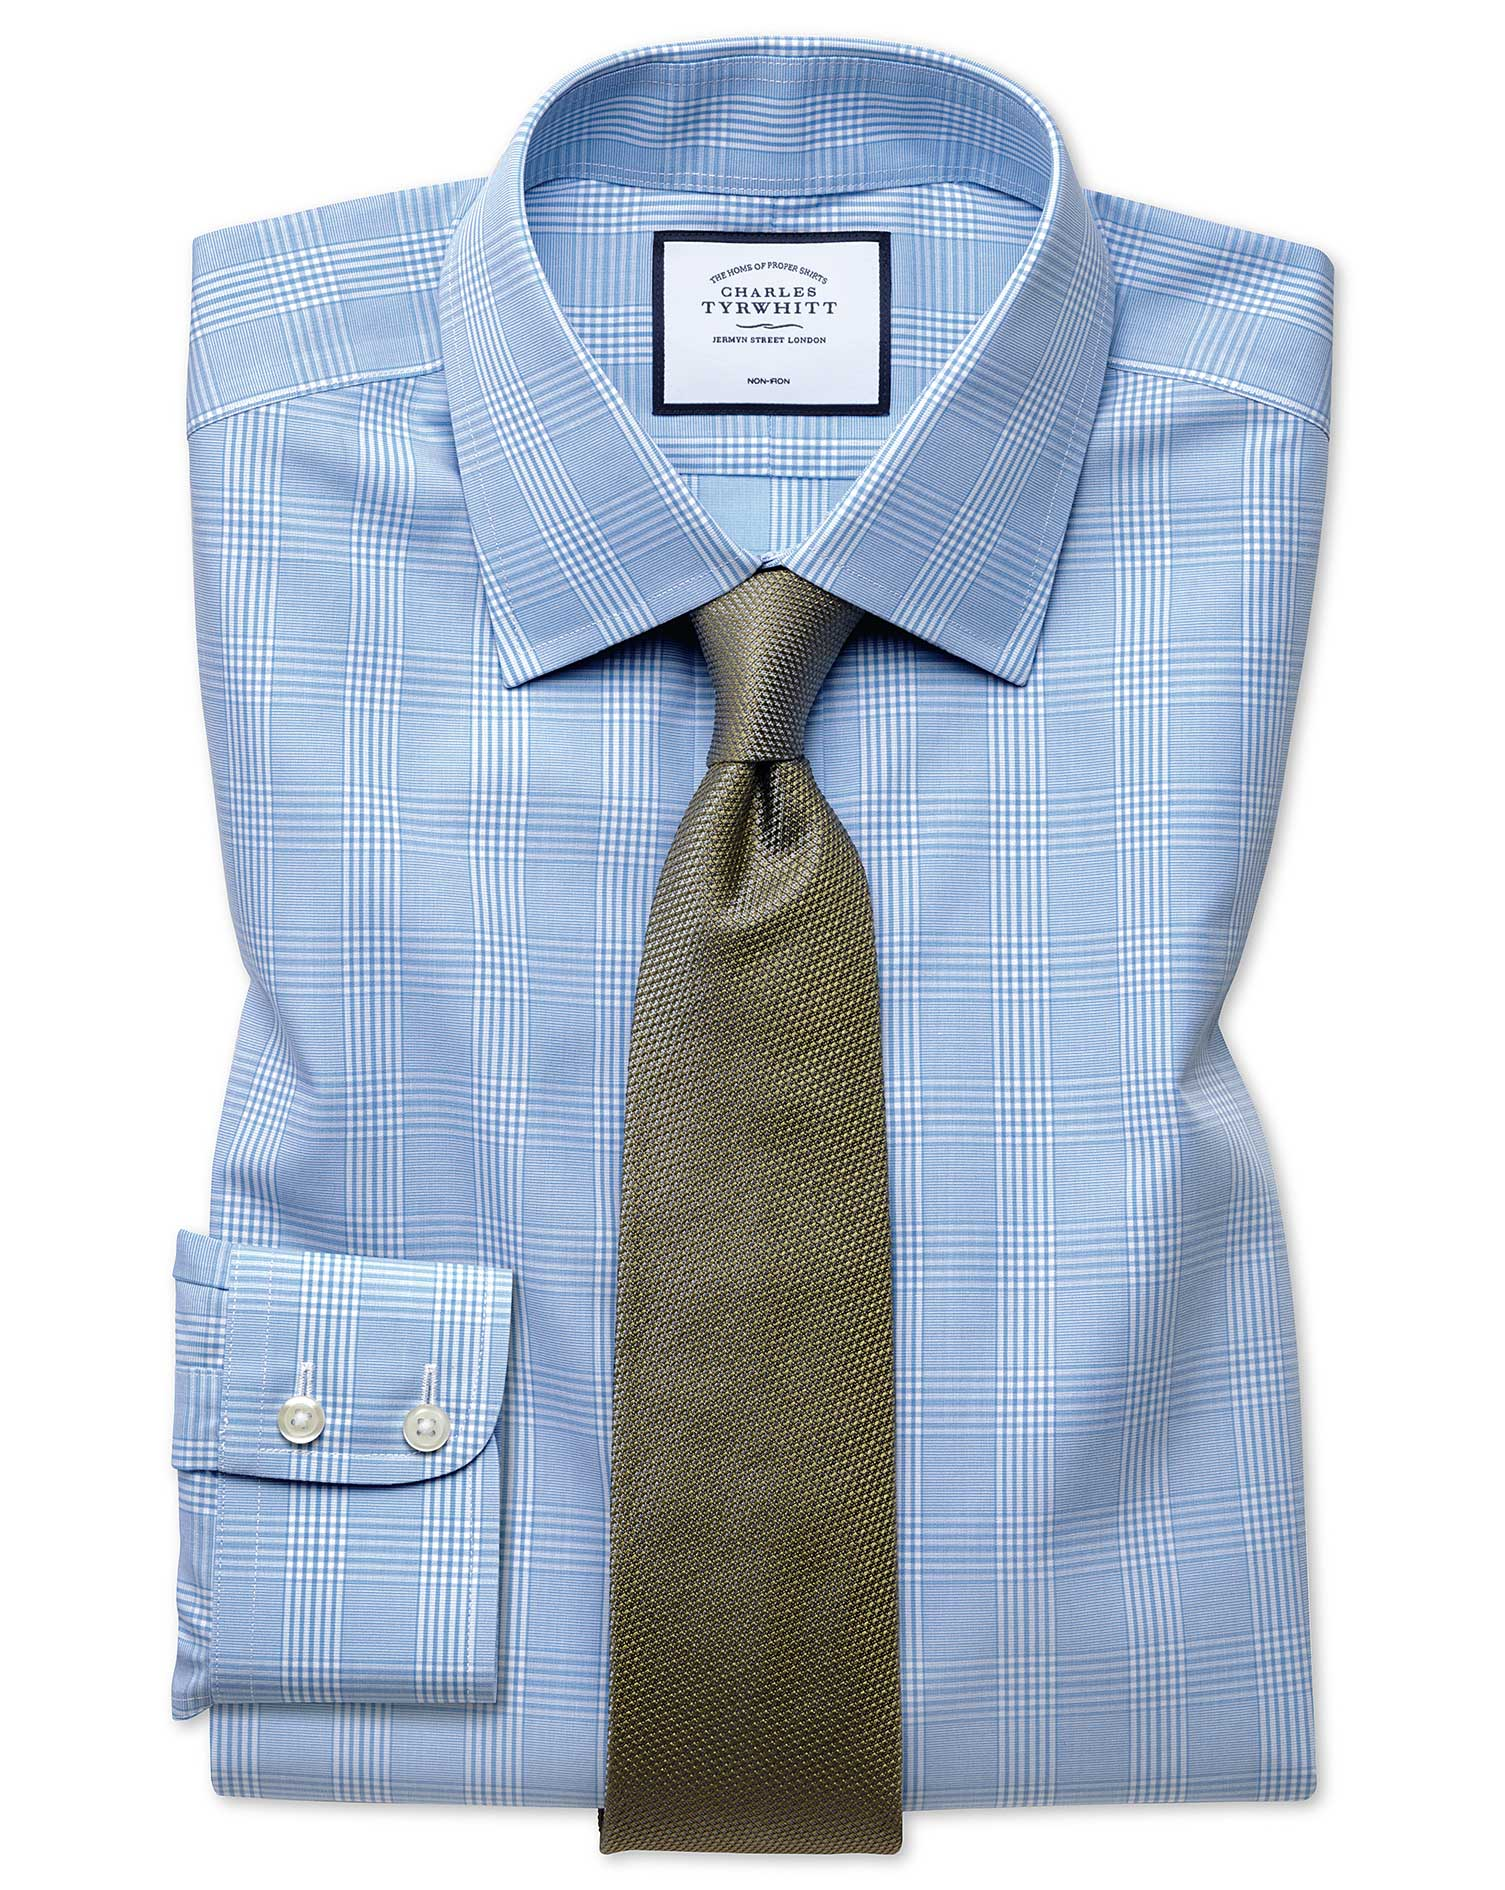 Classic Fit Non-Iron Prince Of Wales Sky Blue Cotton Formal Shirt Double Cuff Size 15.5/34 by Charle